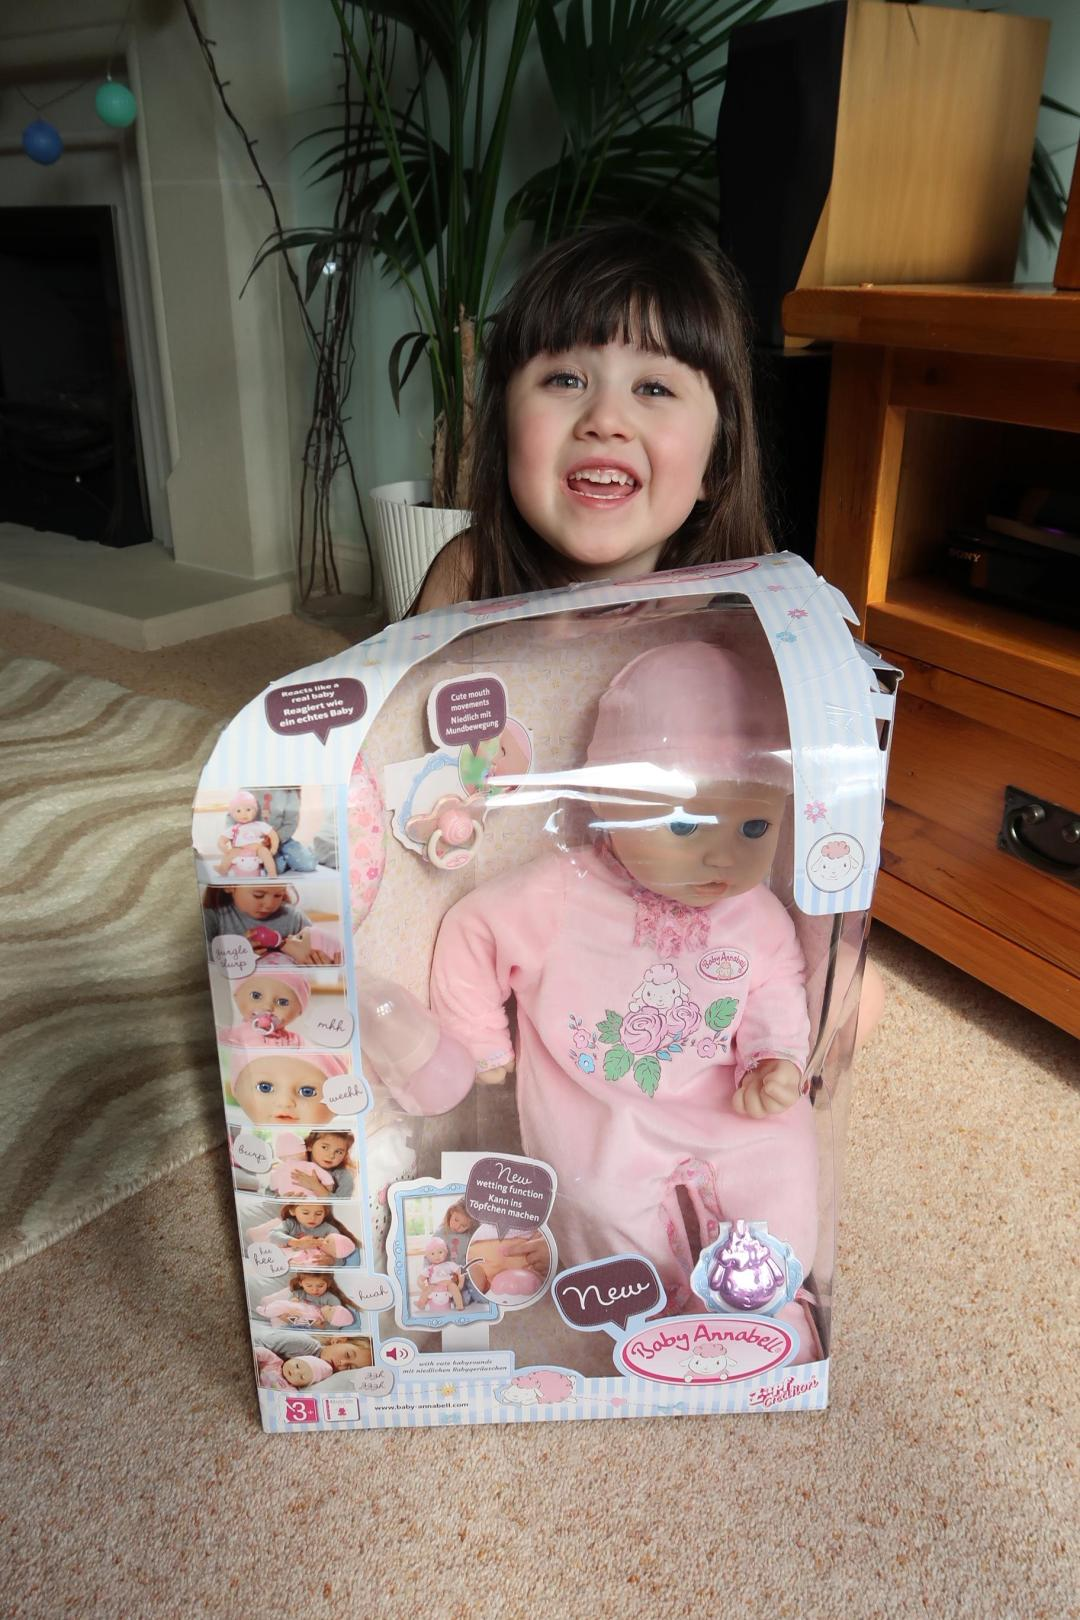 girl excited over interactive baby Annabell doll